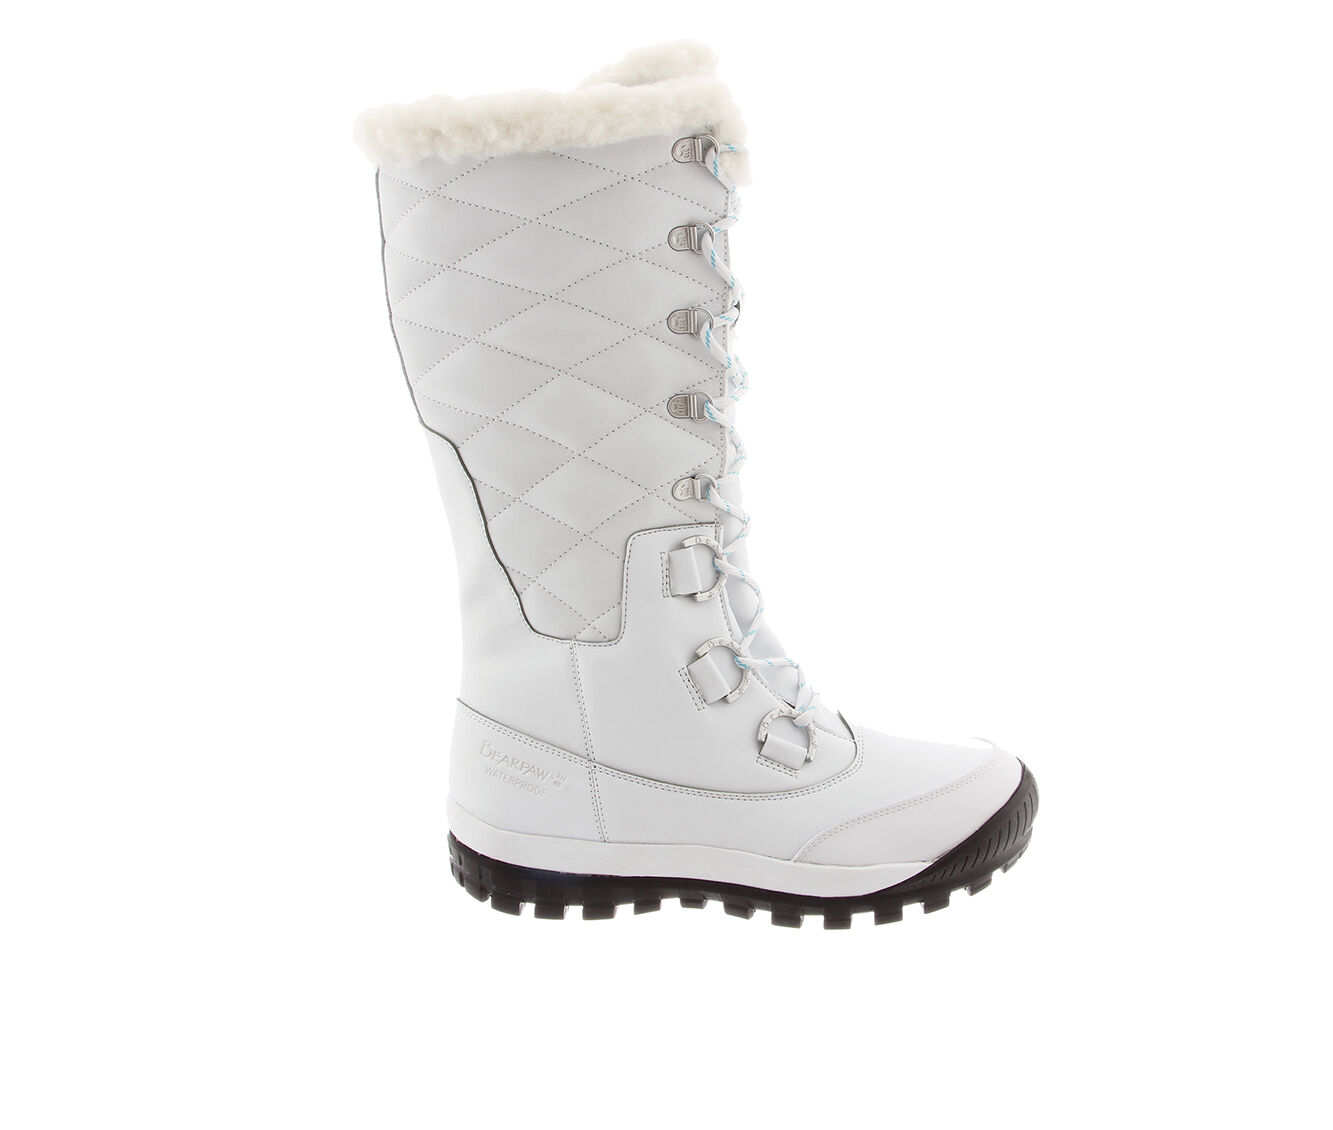 New Release Women's Bearpaw Isabella Winter Boots White